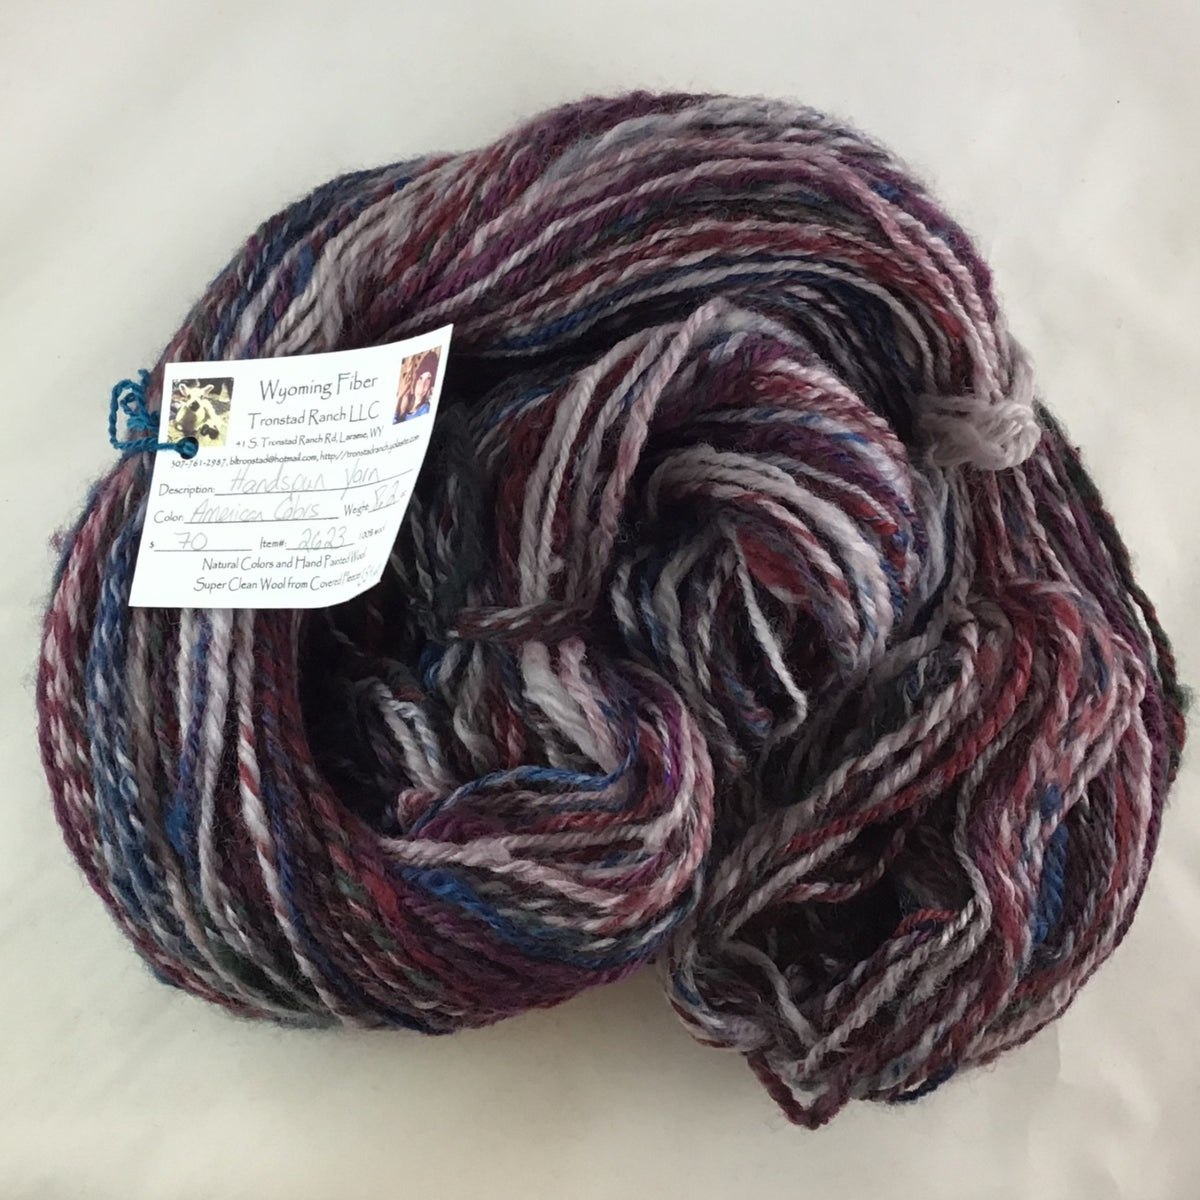 Tronstad Ranch Handspun American Colors